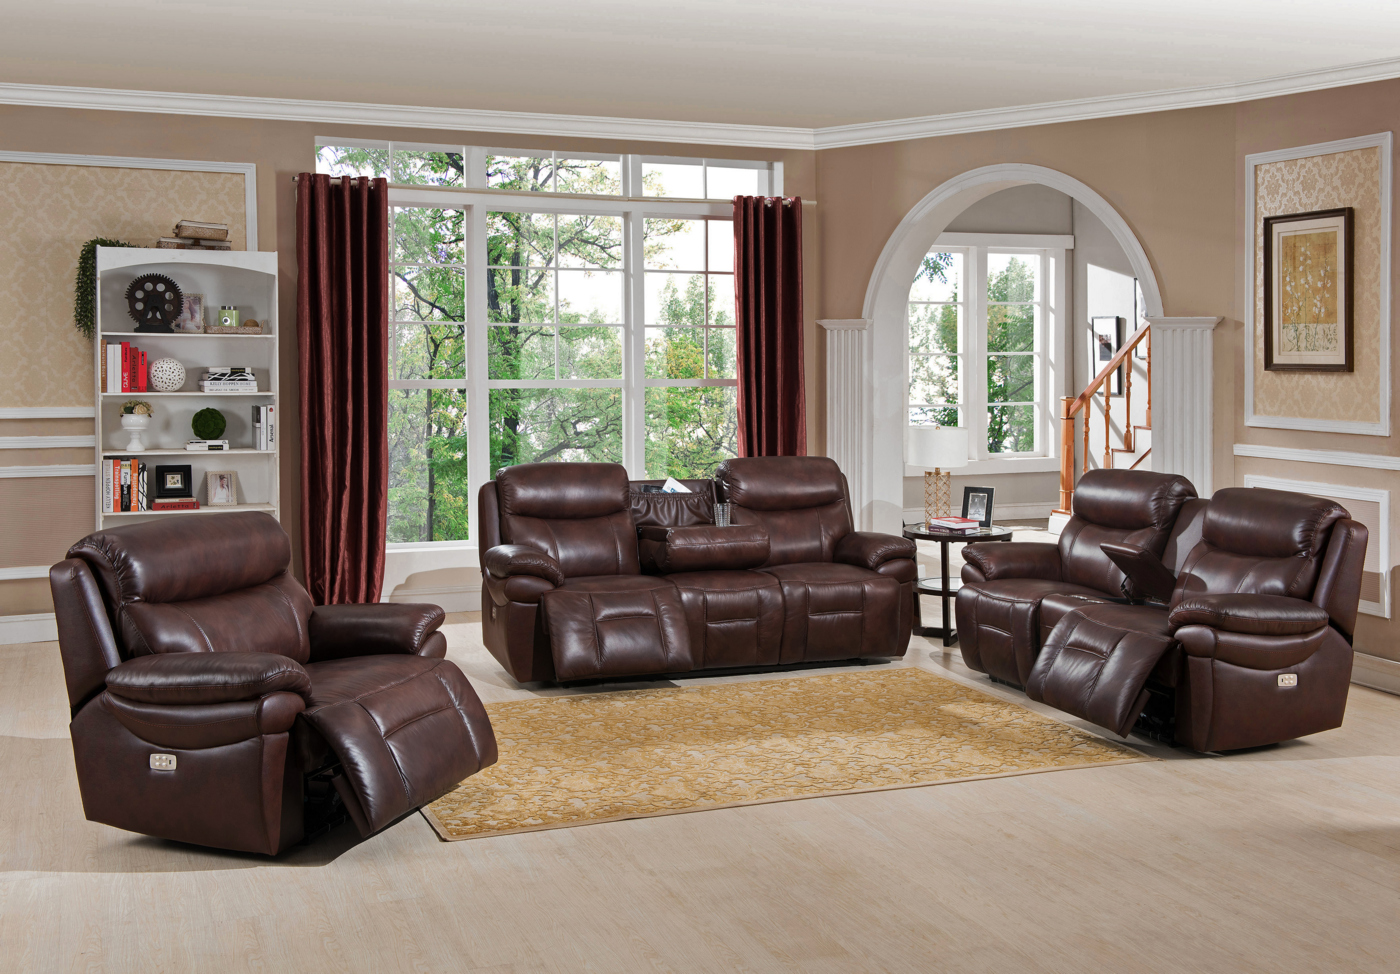 nora brown leather reclining 3 pc living room sofa set studio sofas summerlands powered 3pc in genuine